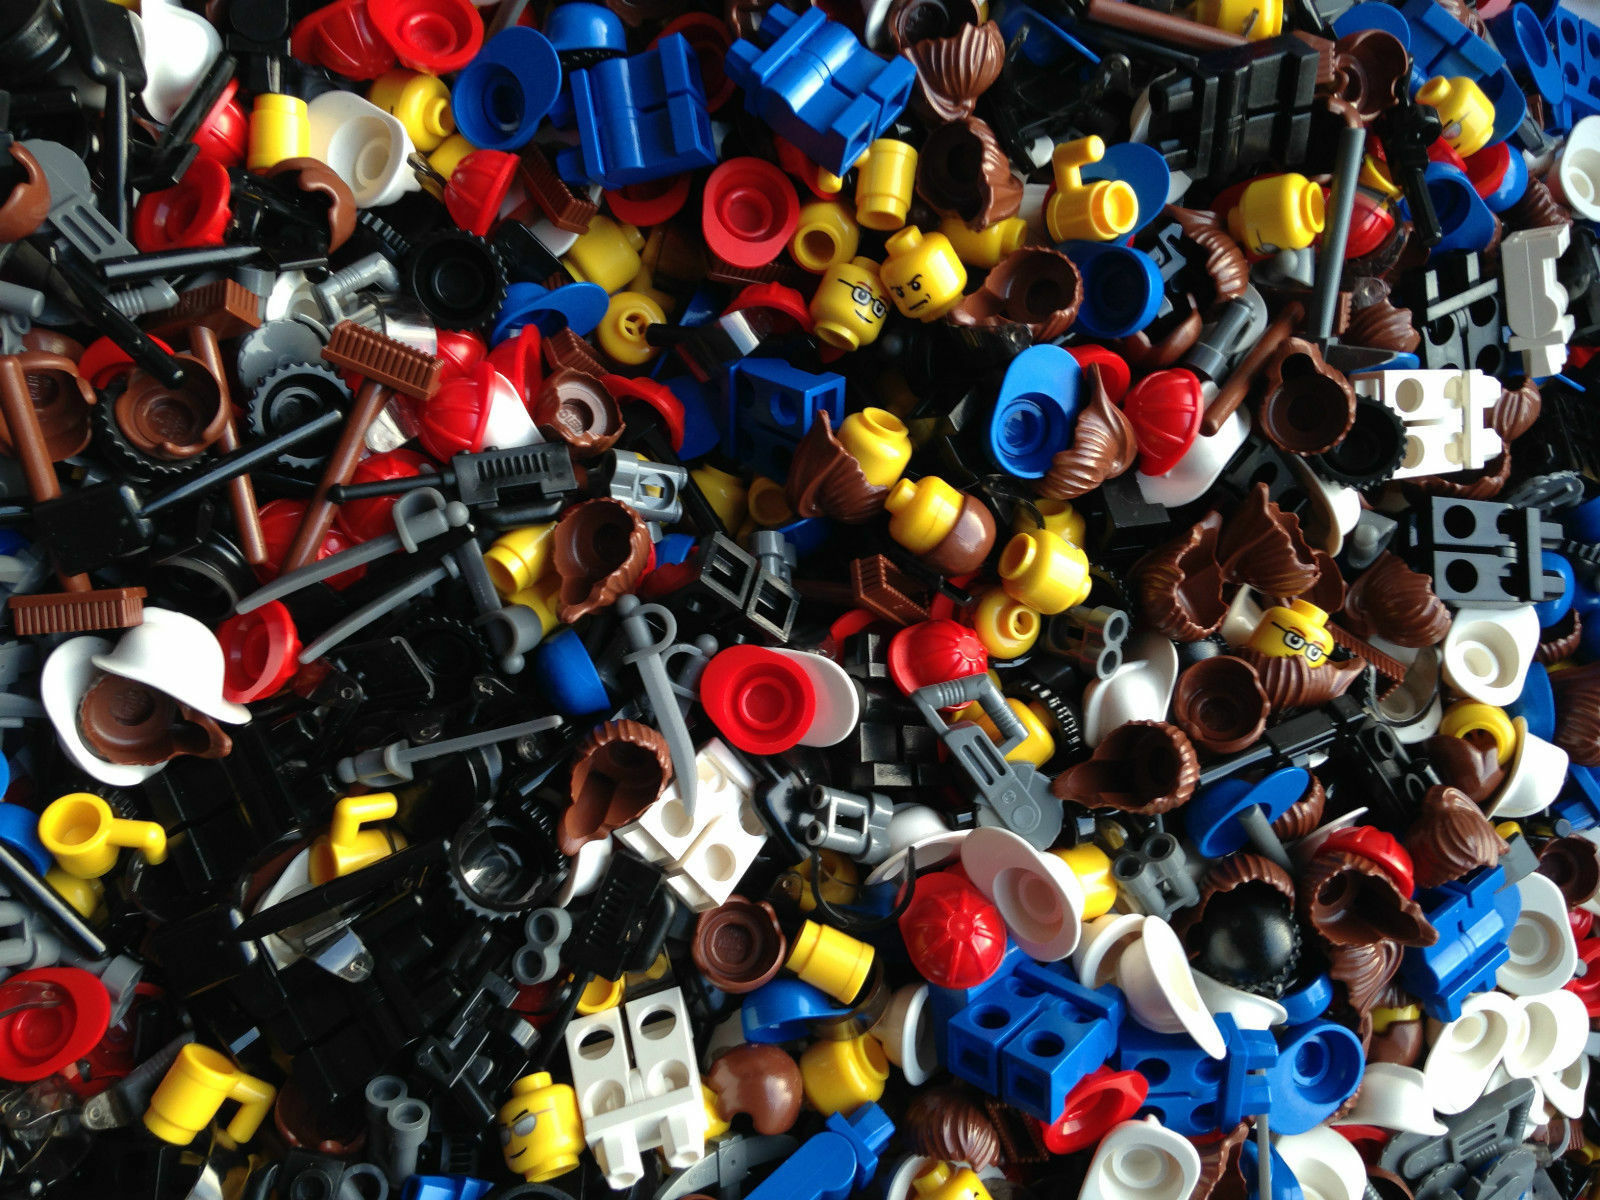 LEGO 500 Pieces Random Mix Accessories Hair Tools Weapons Hats Visors Legs Heads